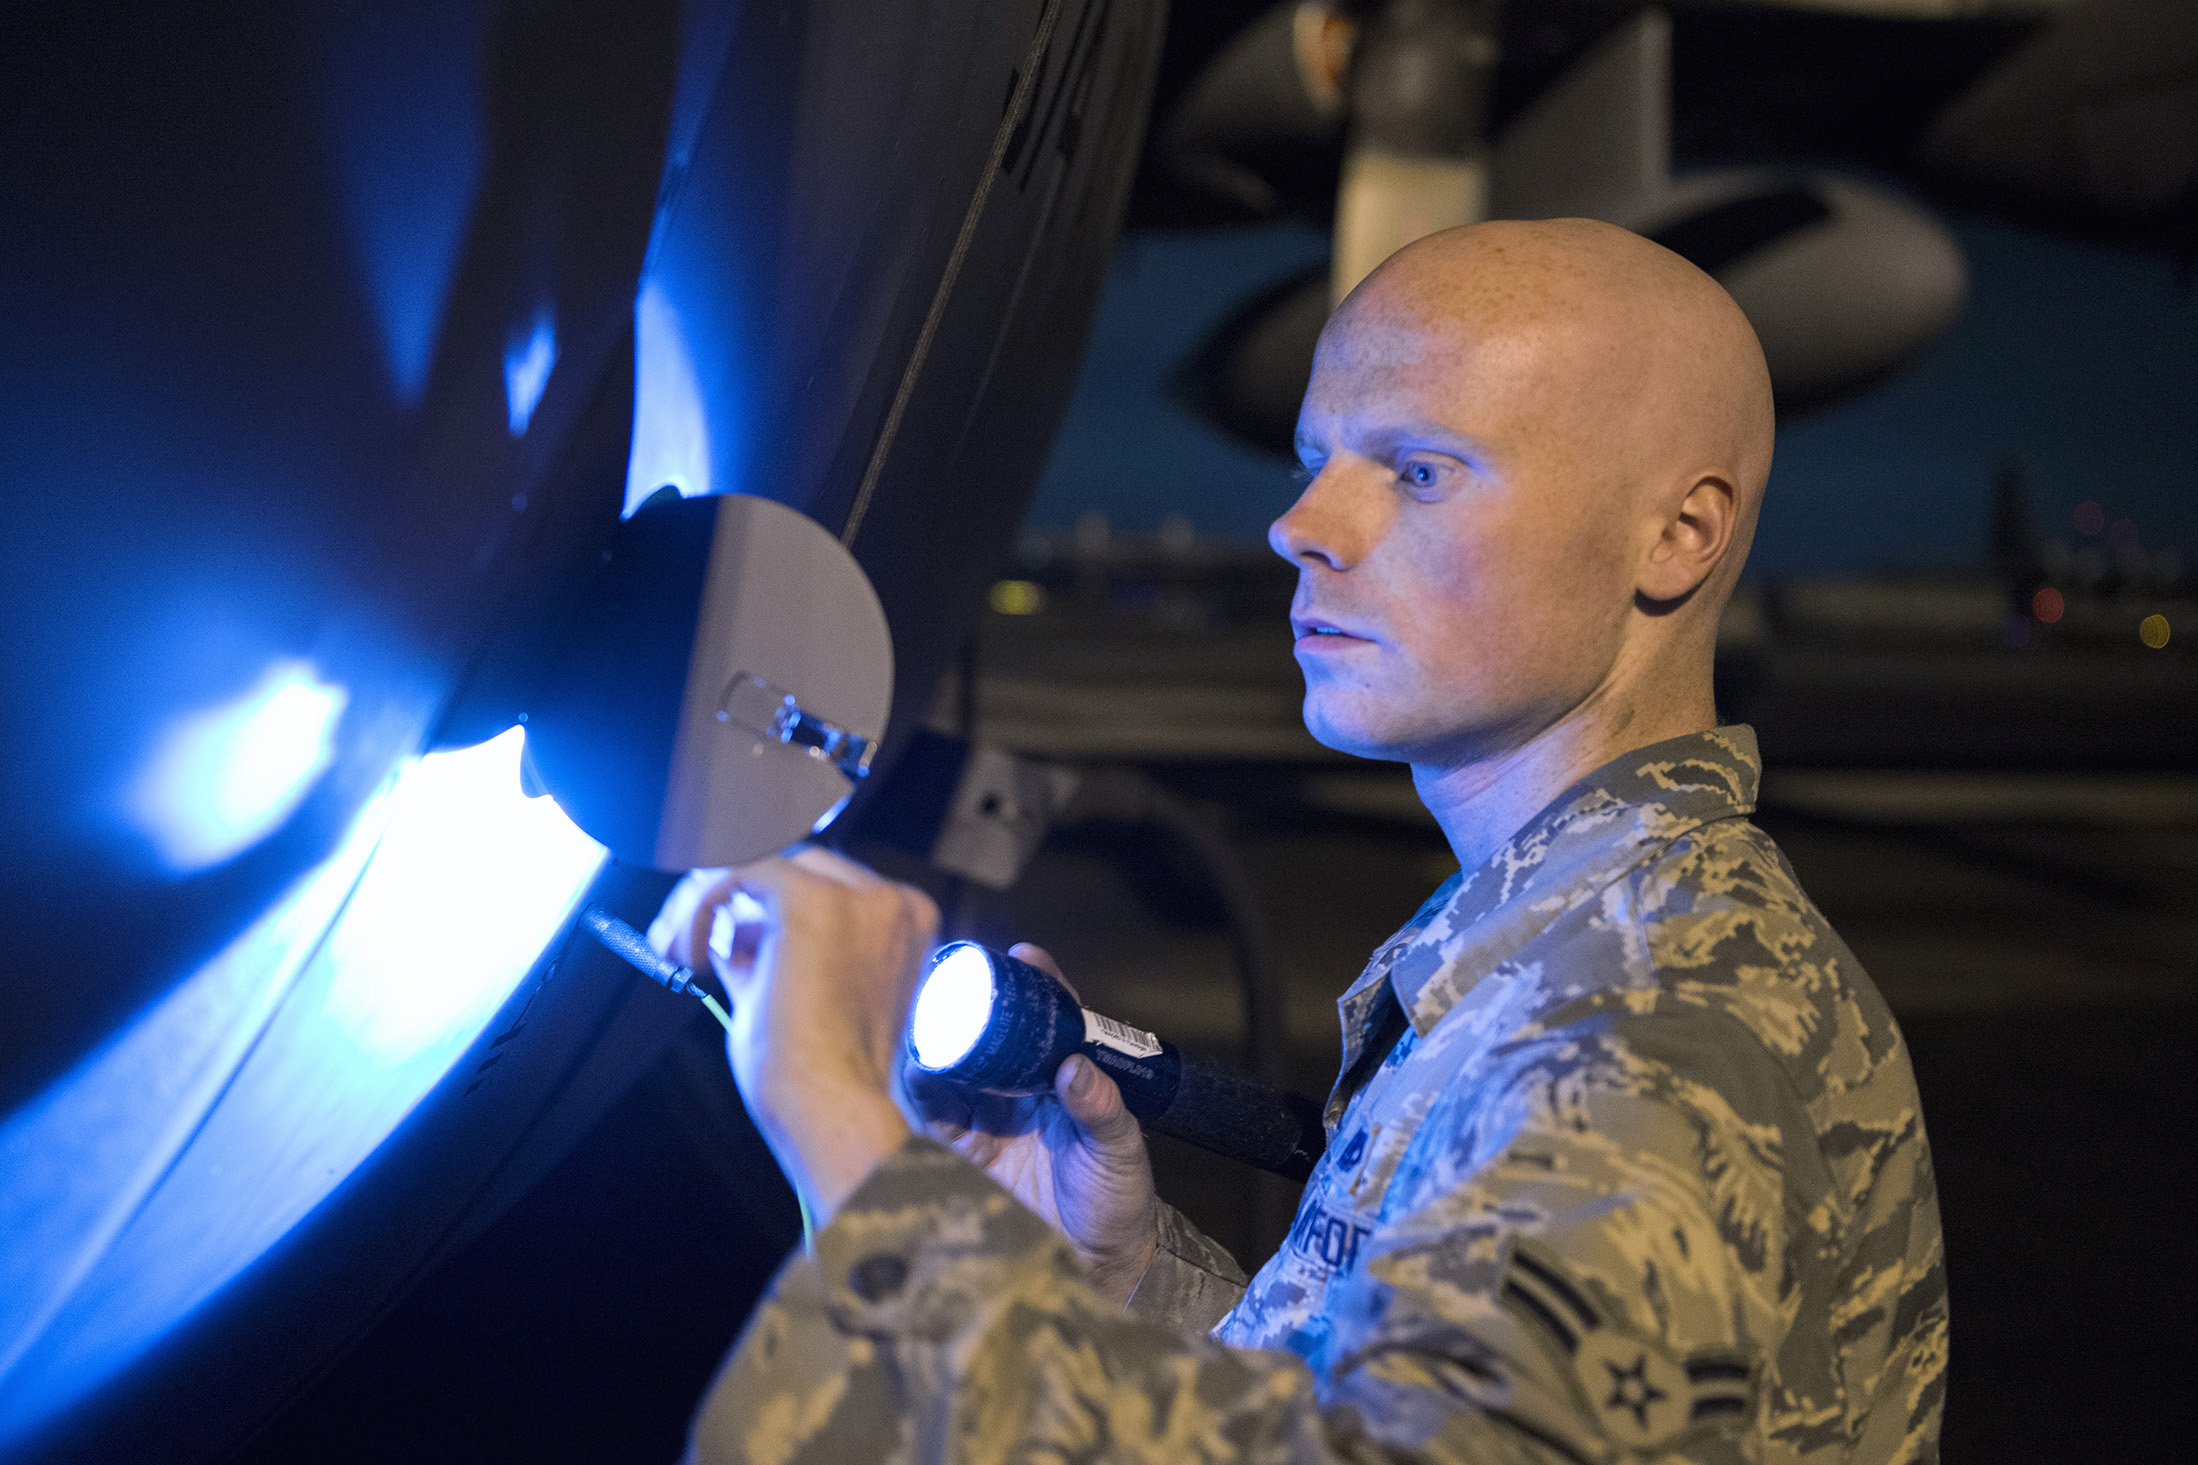 Airman 1st Class Christopher Cook, 374th Aircraft Maintenance Squadron crew chief, inspects a C-130 Hercules for any obvious physical damage or leaks and ensures all fasteners are sealed during VIGILANT ACE 16 at Yokota Air Base, Japan, Nov. 2 2015. Maintainers with the 374 AMXS always work 24 hours a day, 7 days a week, to ensure their C-130 fleet is ready to respond at a moment's notice for any requirement in the Indo-Asia Pacific region. The exercise tested this readiness and Yokota's ability to receive and deploy forces throughout the theater. (U.S. Air Force photo by Staff Sgt. Cody H. Ramirez/Released)